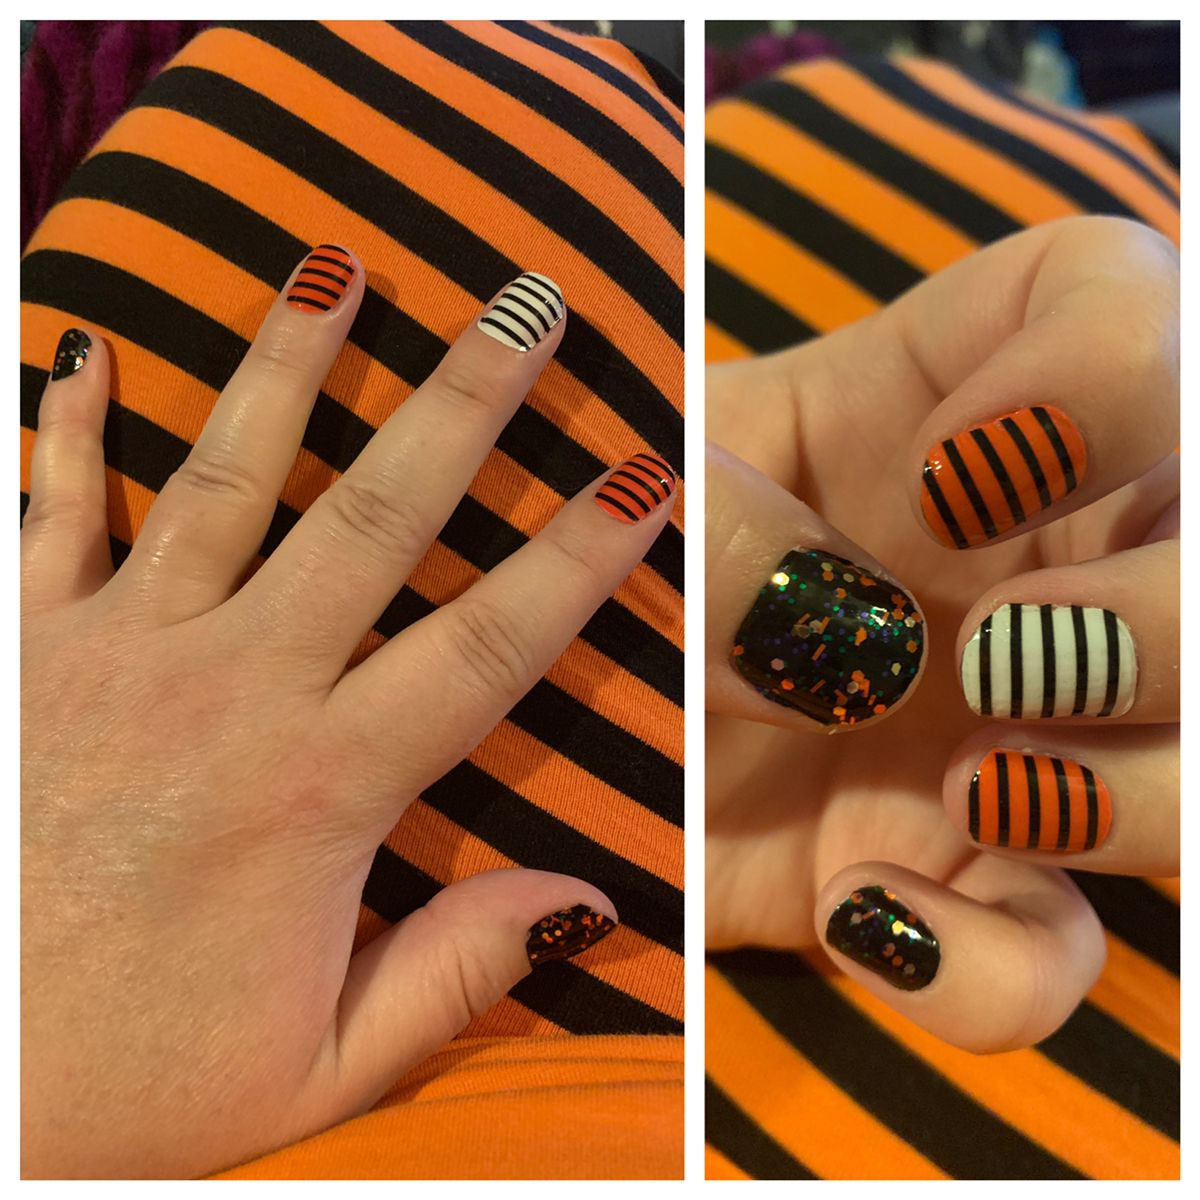 Halloween Color Street 2020 Combos Color Street Nails Halloween Combo in 2020 | Color street nails